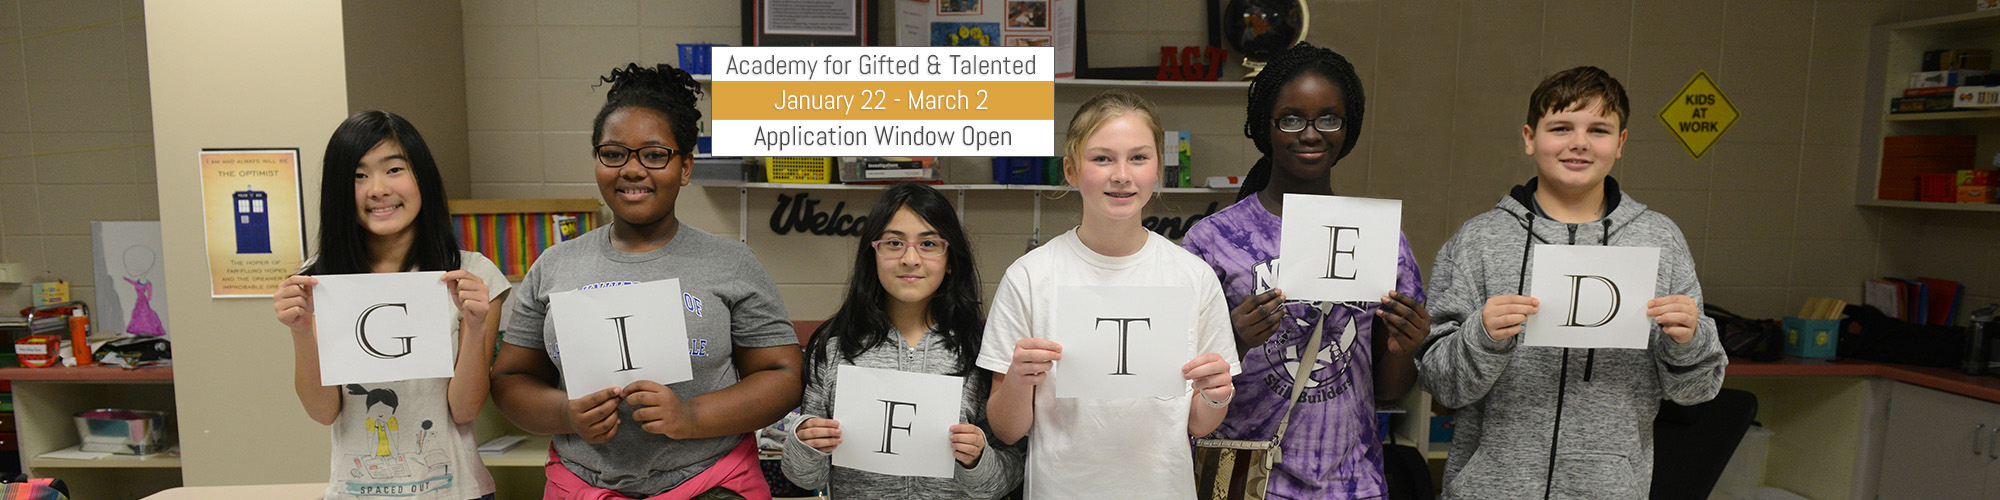 Students holding up letters that spell GIFTED, Academy for Gifted & Talented Application Window open from January 22nd until March 2nd